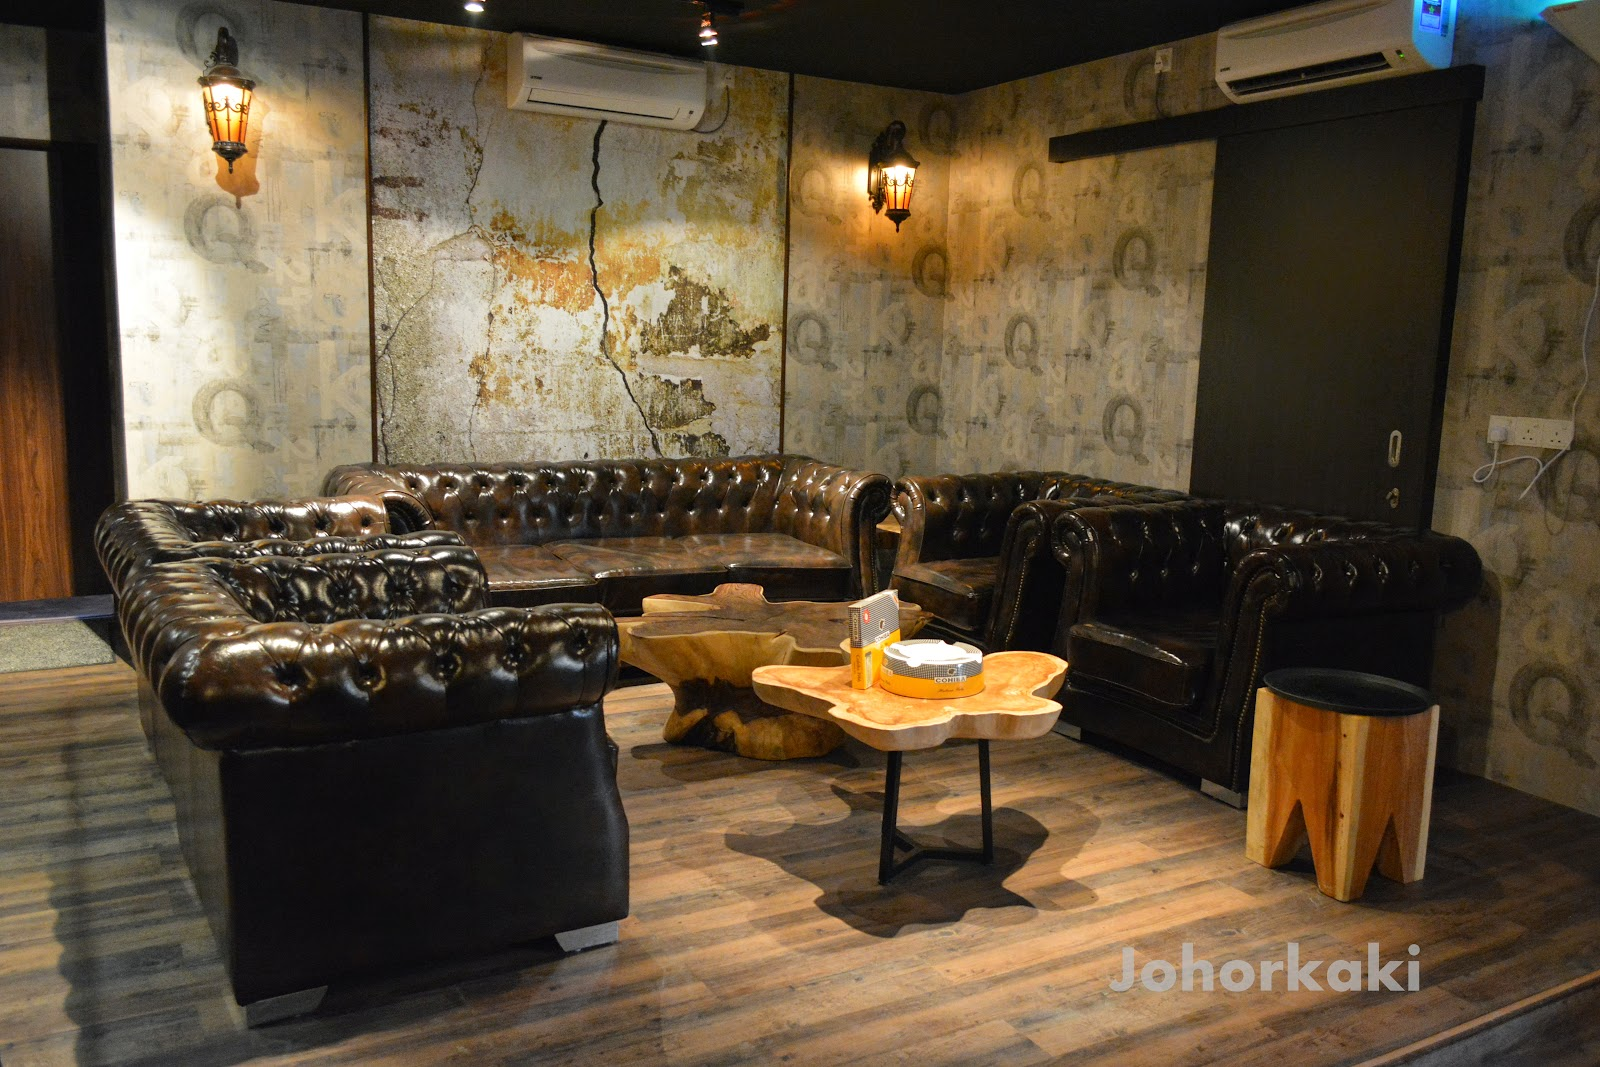 Brazzo By The Bay Western Fine Dining In Johor Bahru